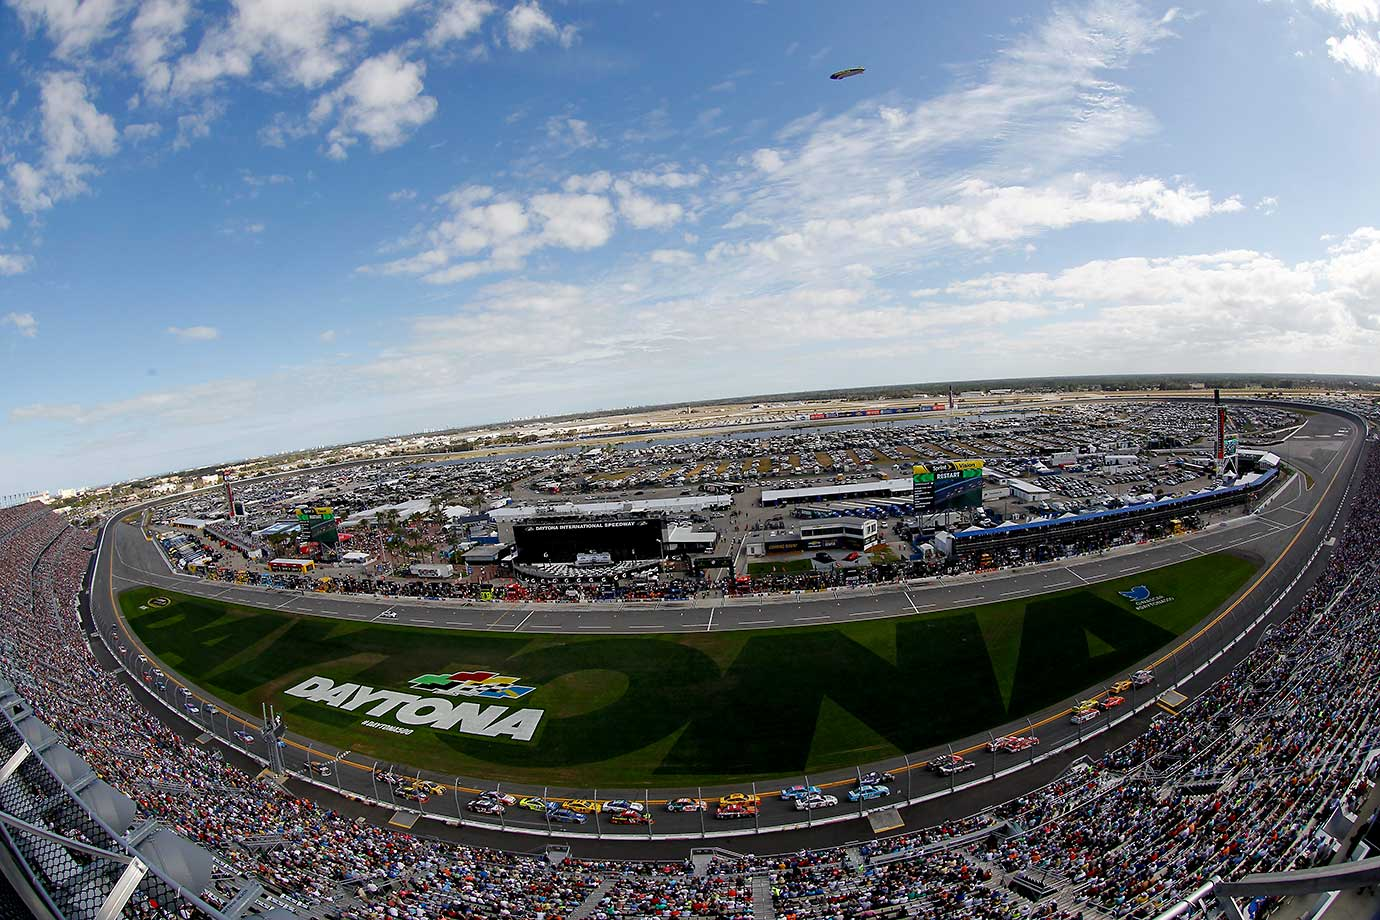 A general view of the speedway as cars race during the Daytona 500.